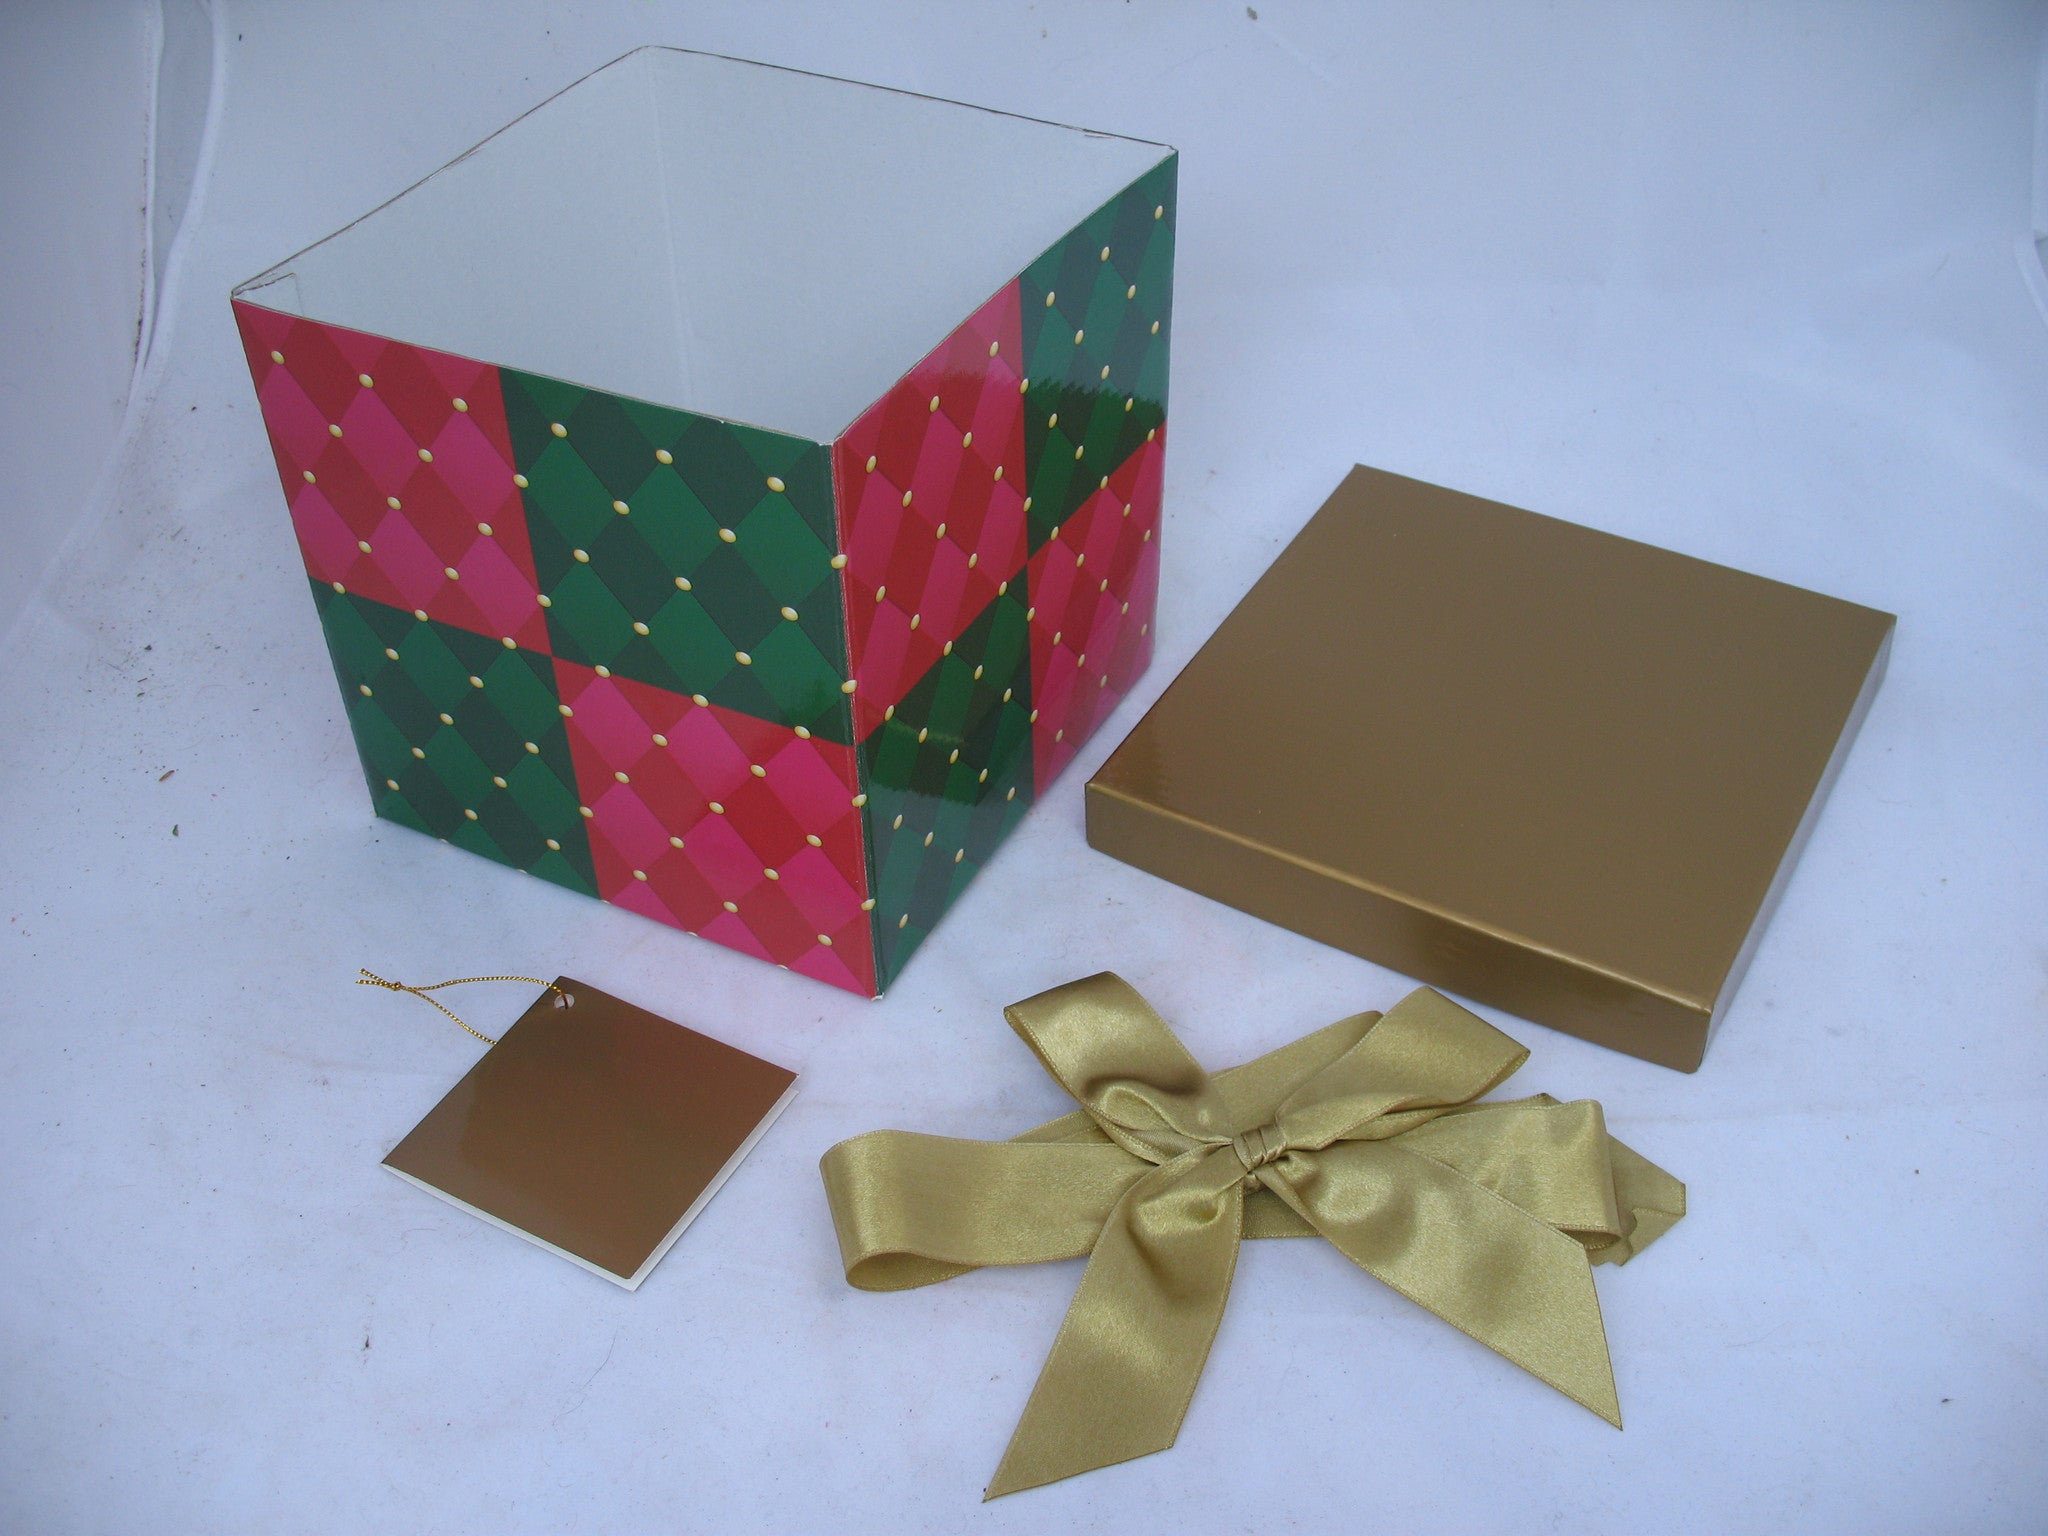 NEW AVON Christmas Holiday Birthday SQUARE GIFT WRAP BOX GIFTS BOXES Folding Collapsible with LID RIBBON NOTE CARD & Christmas Holiday Birthday GIFT WRAP BOX GIFTS BOXES | TropicalFeel Aboutintivar.Com